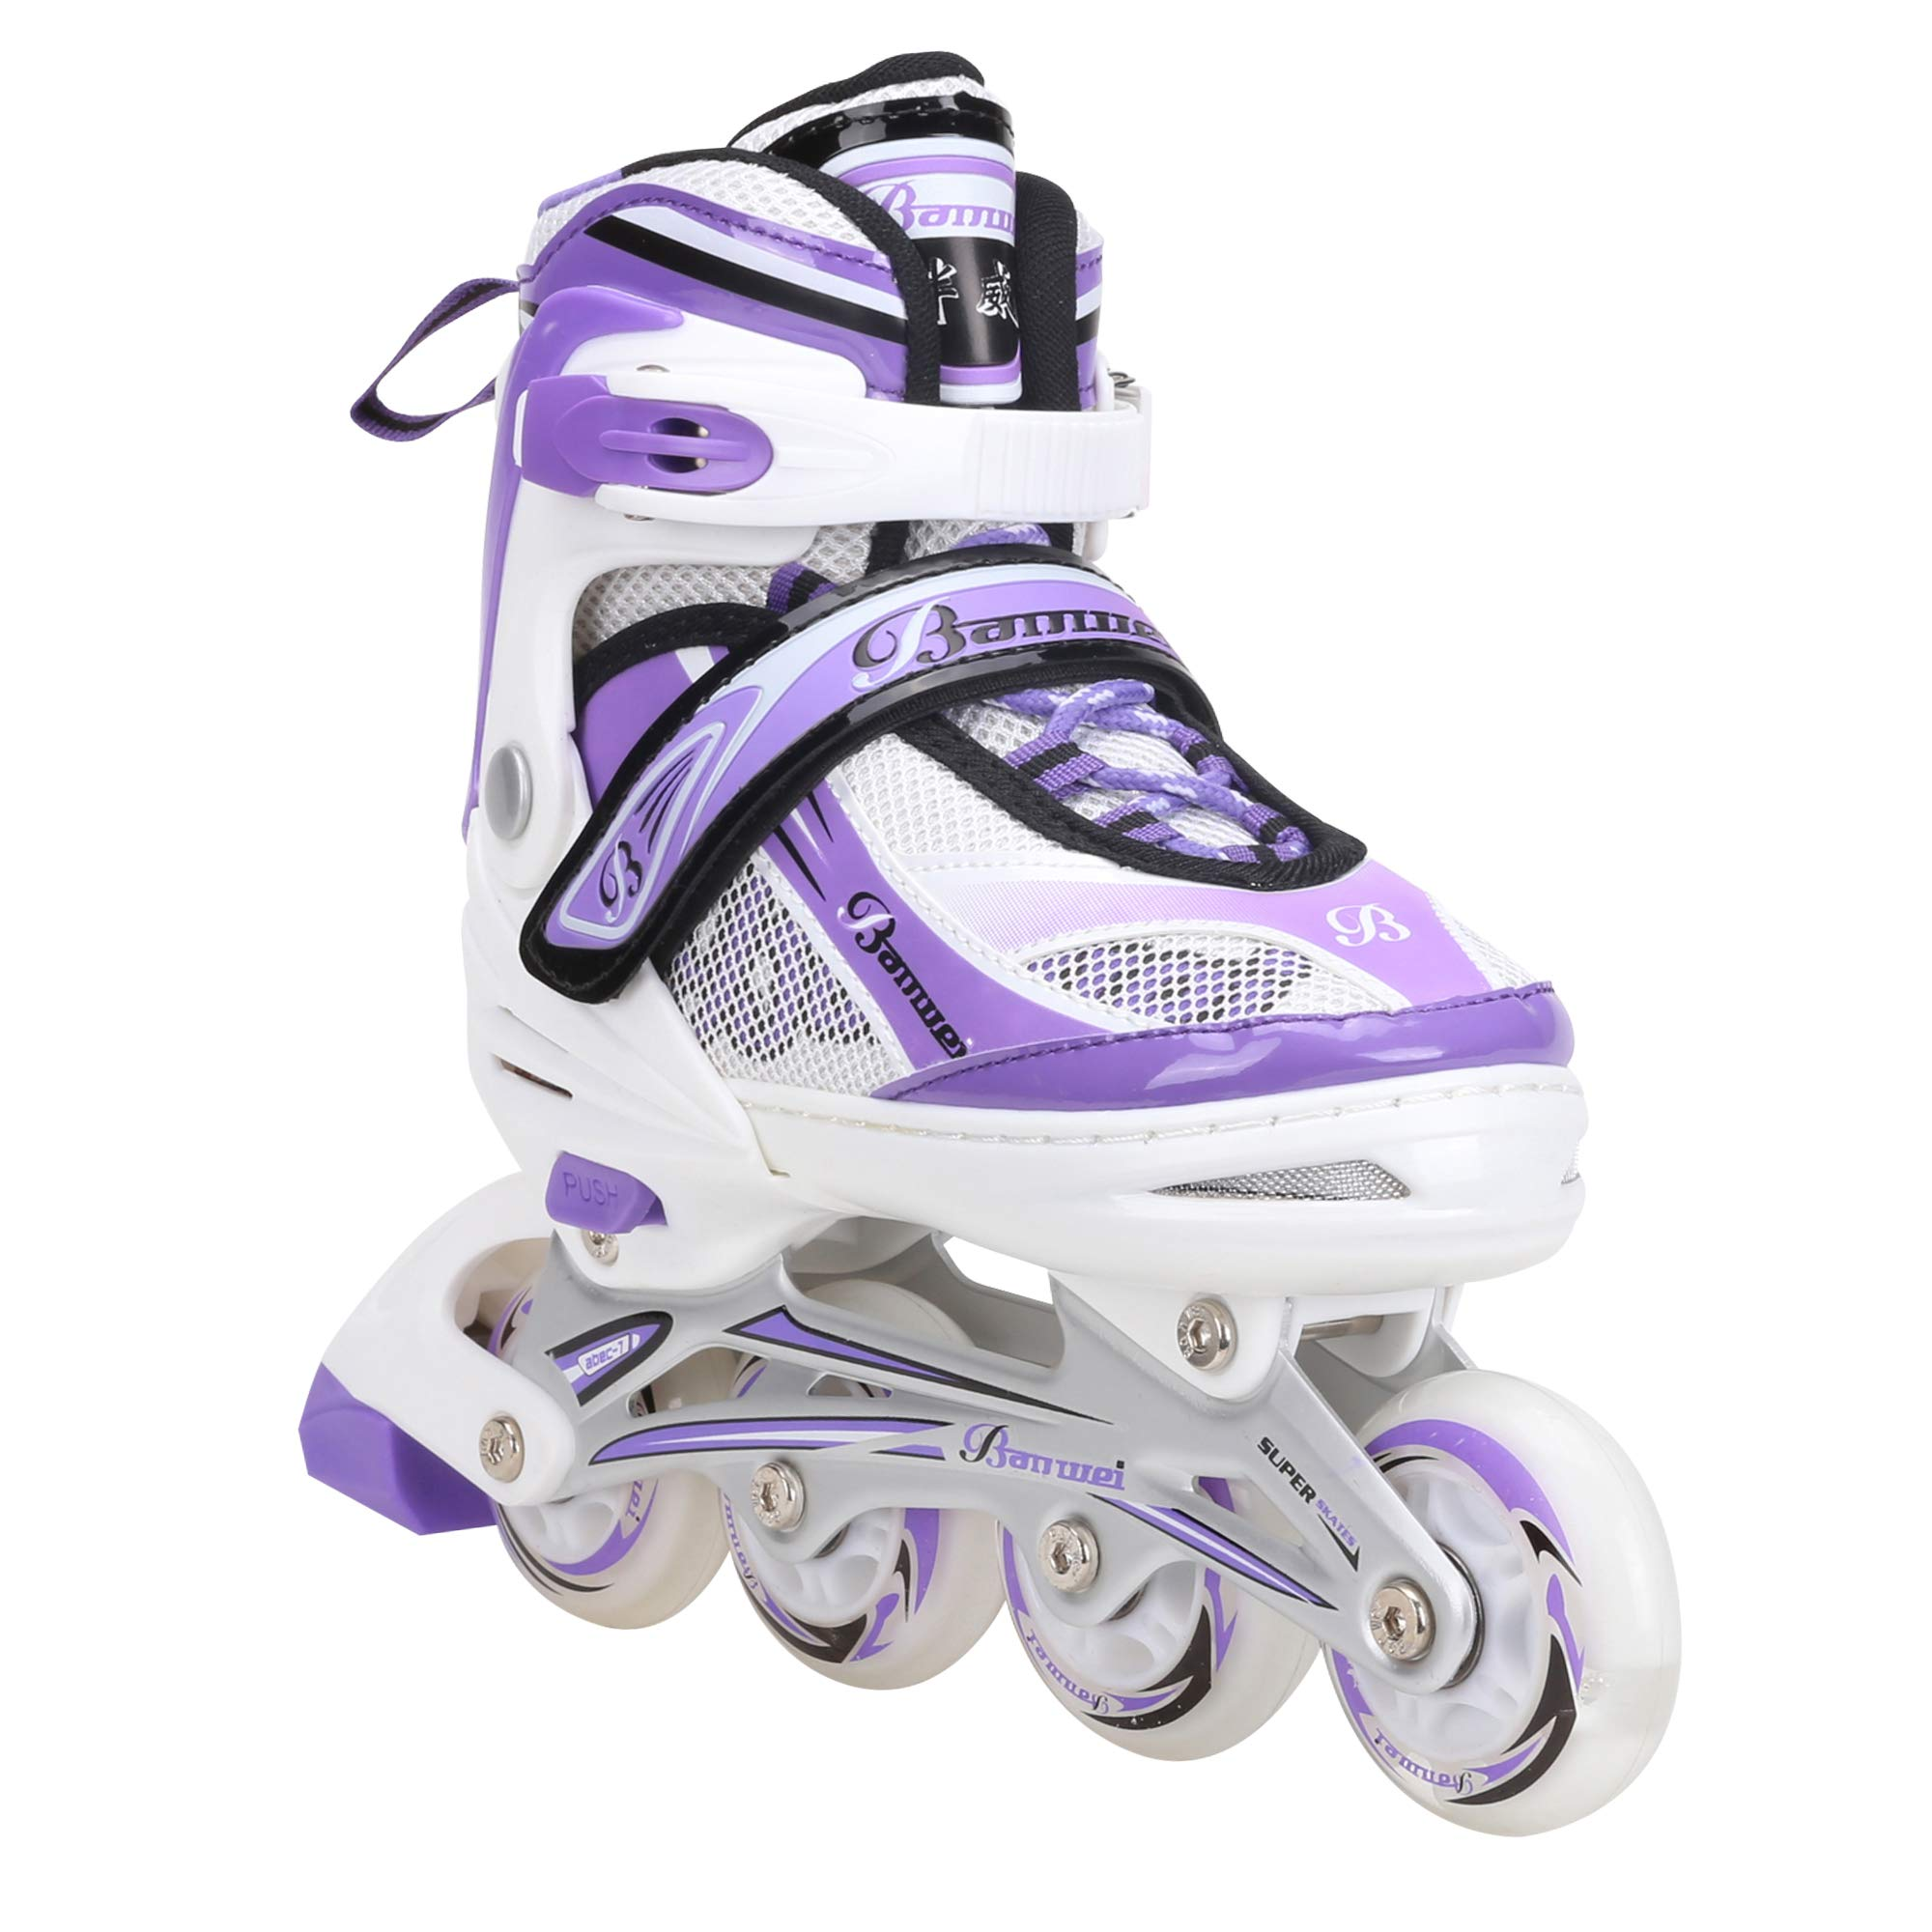 Banwei Adjustable Medium Purple Inline Skates for Girls and Boys Size 13.5J to 6 Illuminating Front Wheel Safe Durable Roller Skates Outdoor Indoor Use